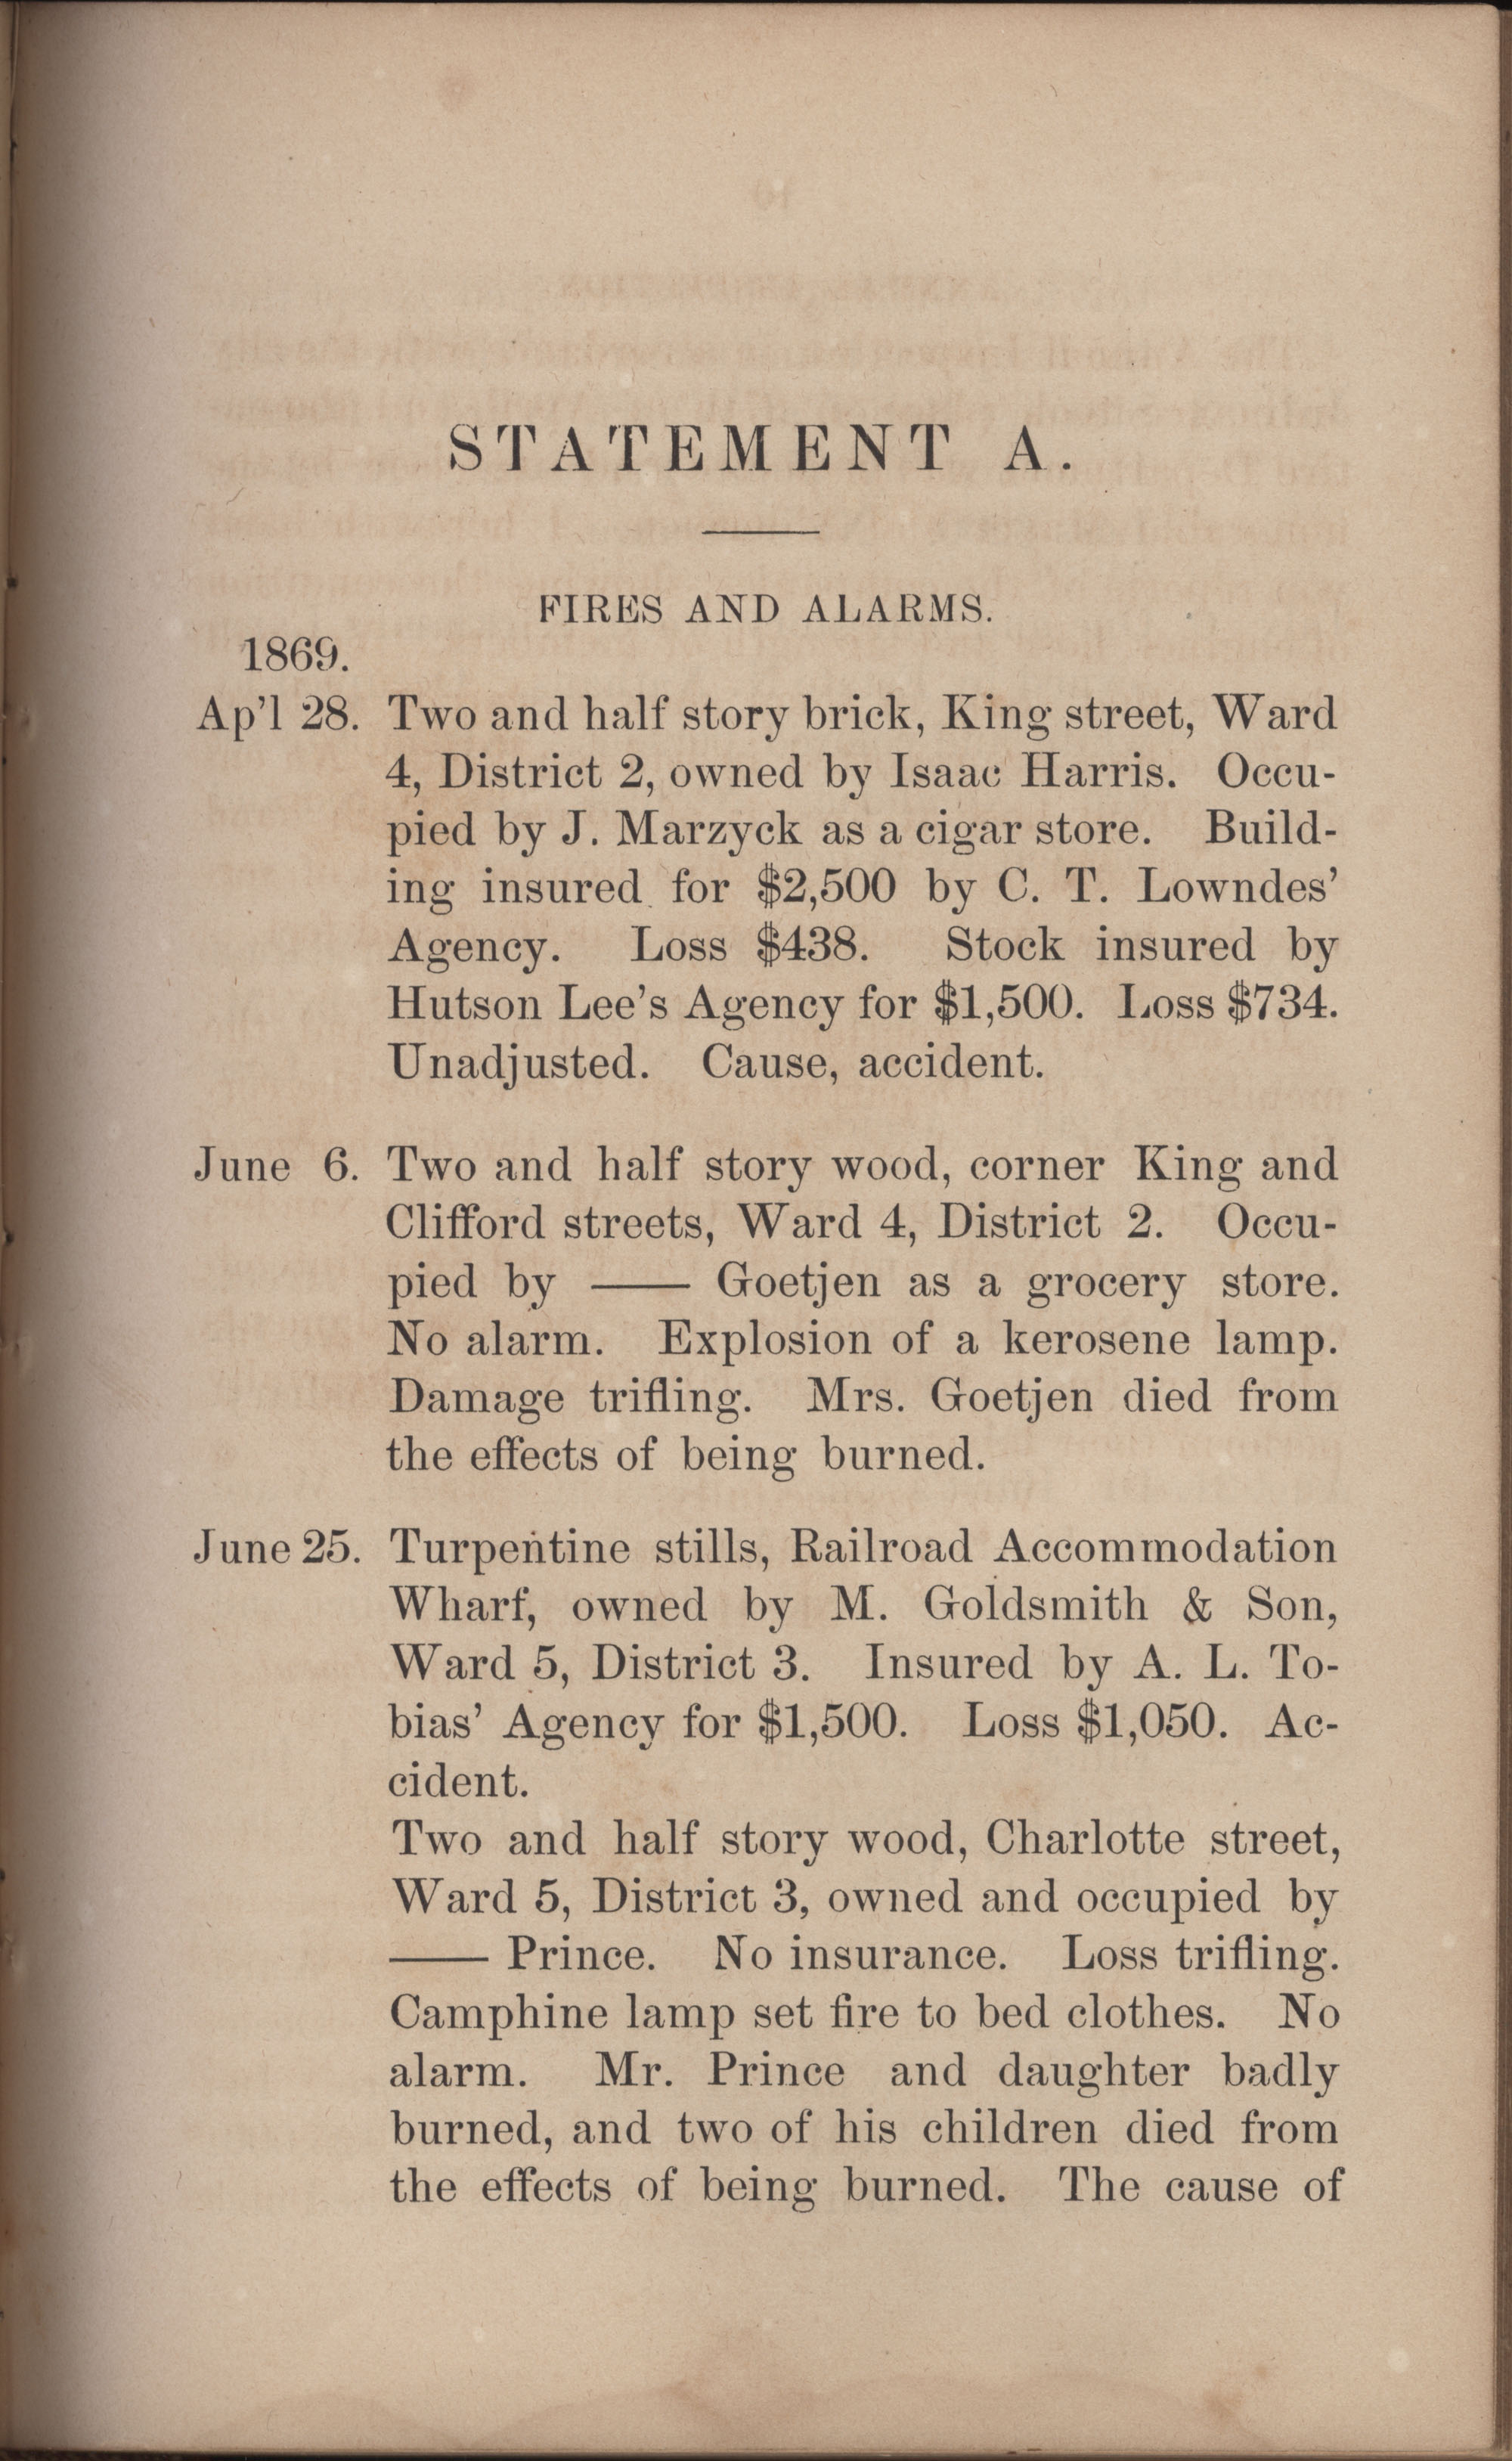 Annual Report of the Chief of the Fire Department of the City of Charleston, page 302